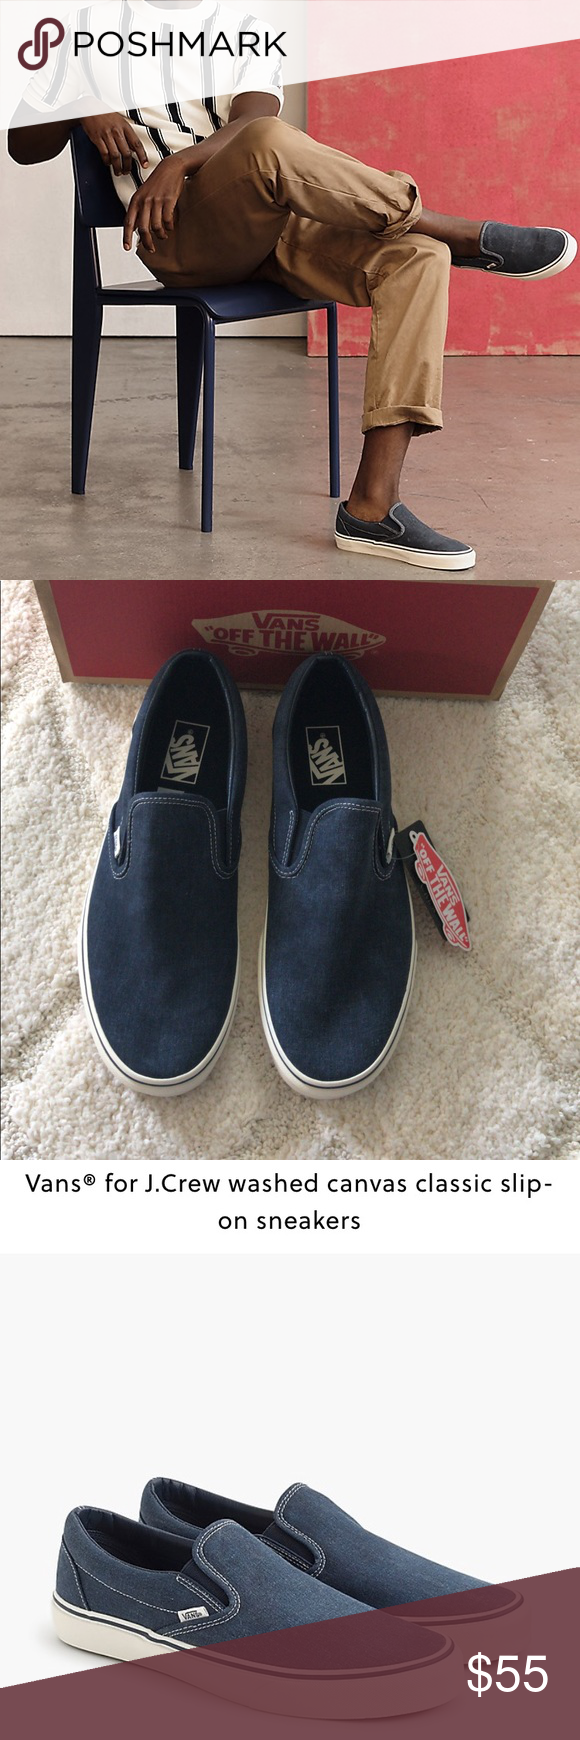 5a3df2c05 Vans® for J.Crew canvas classic slip-on sneakers Vans® for J.Crew washed  canvas classic slip-on sneakers Color: BLUEBERRY Founded by Paul Van Doren  in 1966, ...